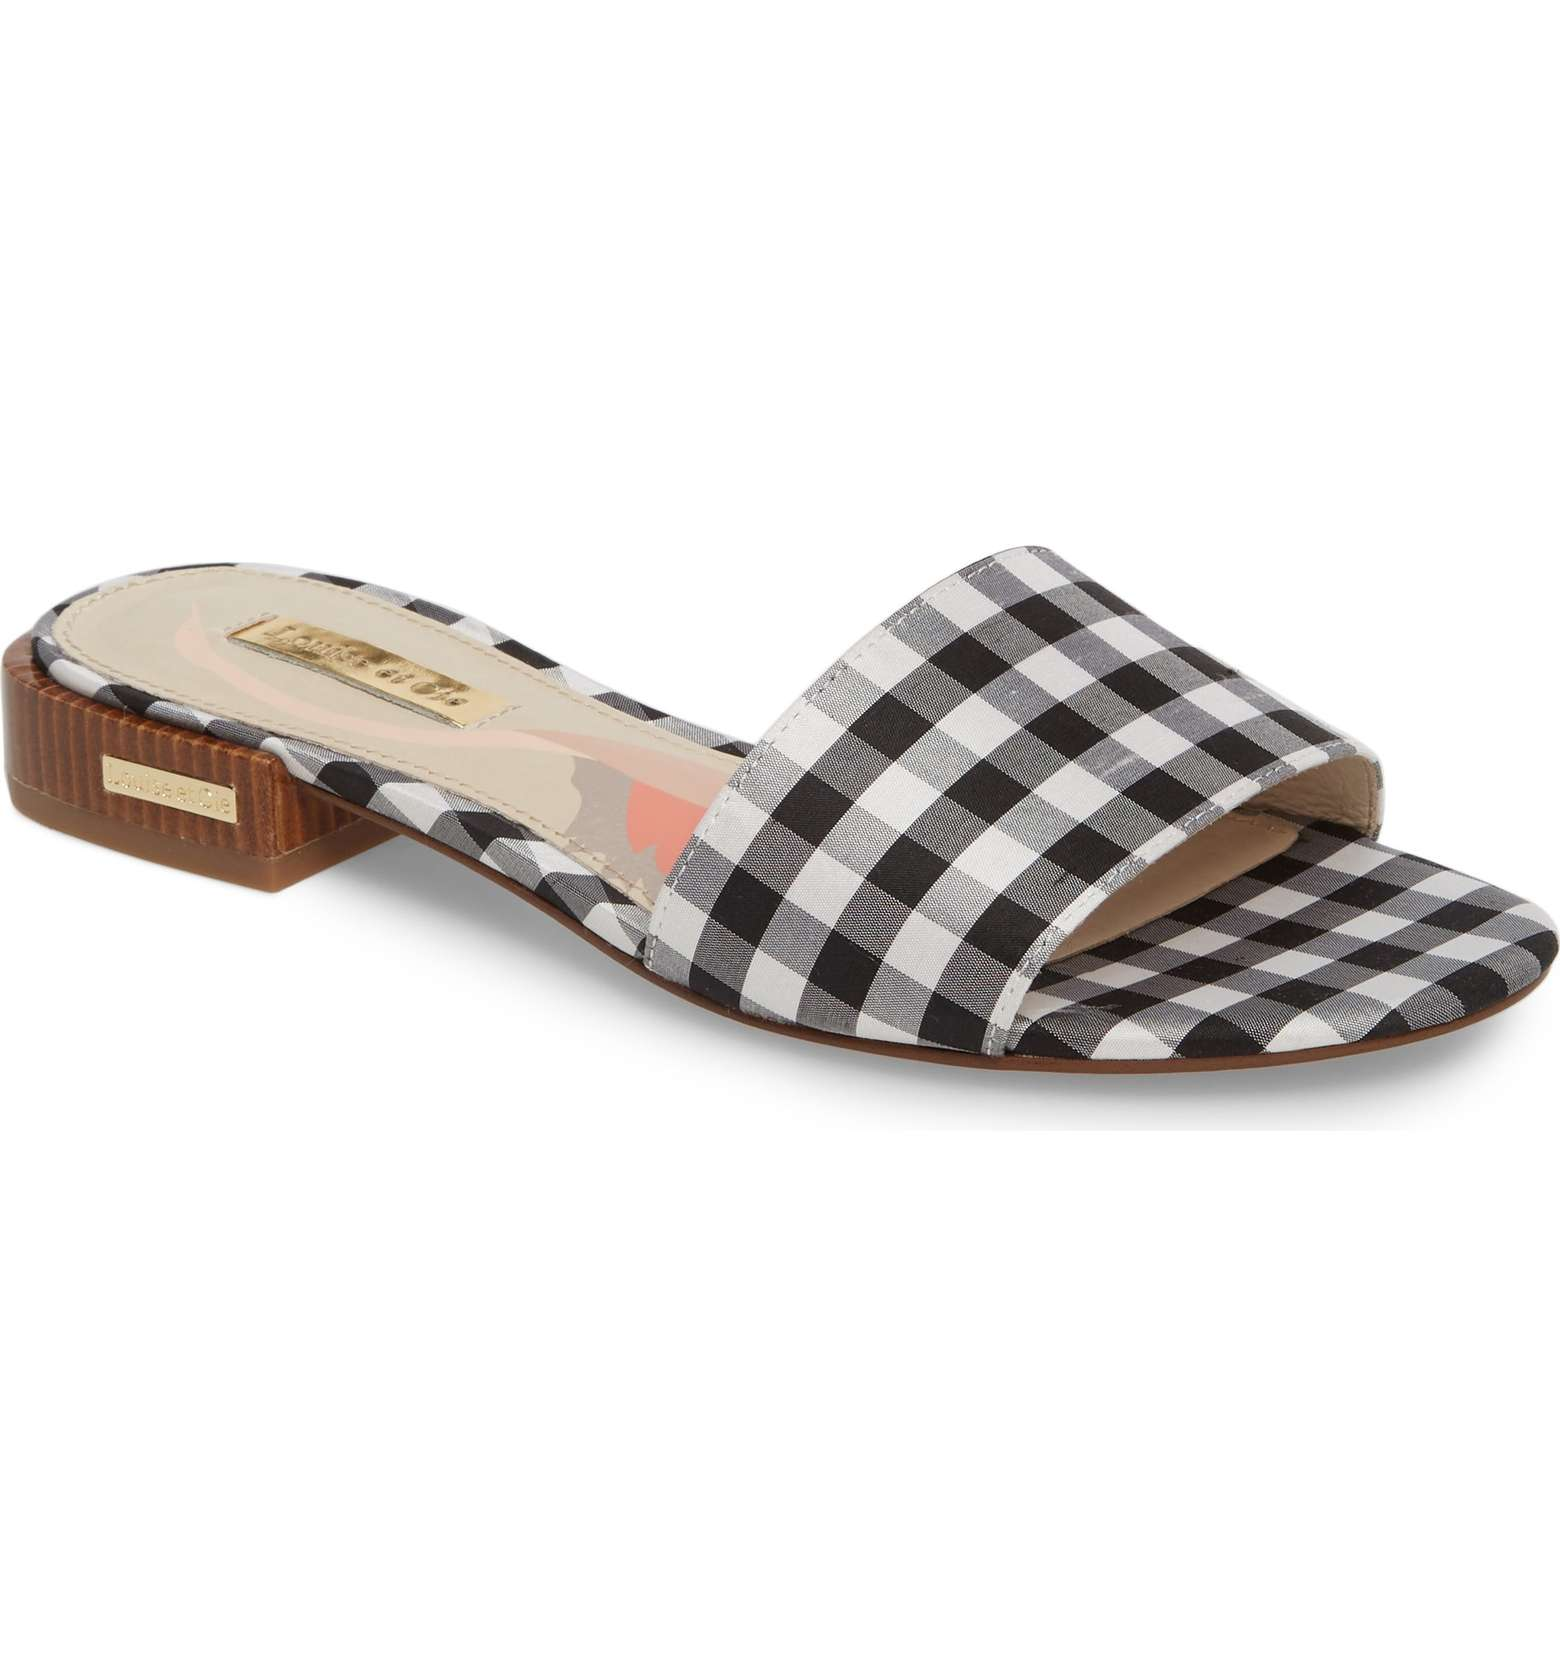 https://shop.nordstrom.com/s/louise-et-cie-aydia-slide-sandal-women/4857819